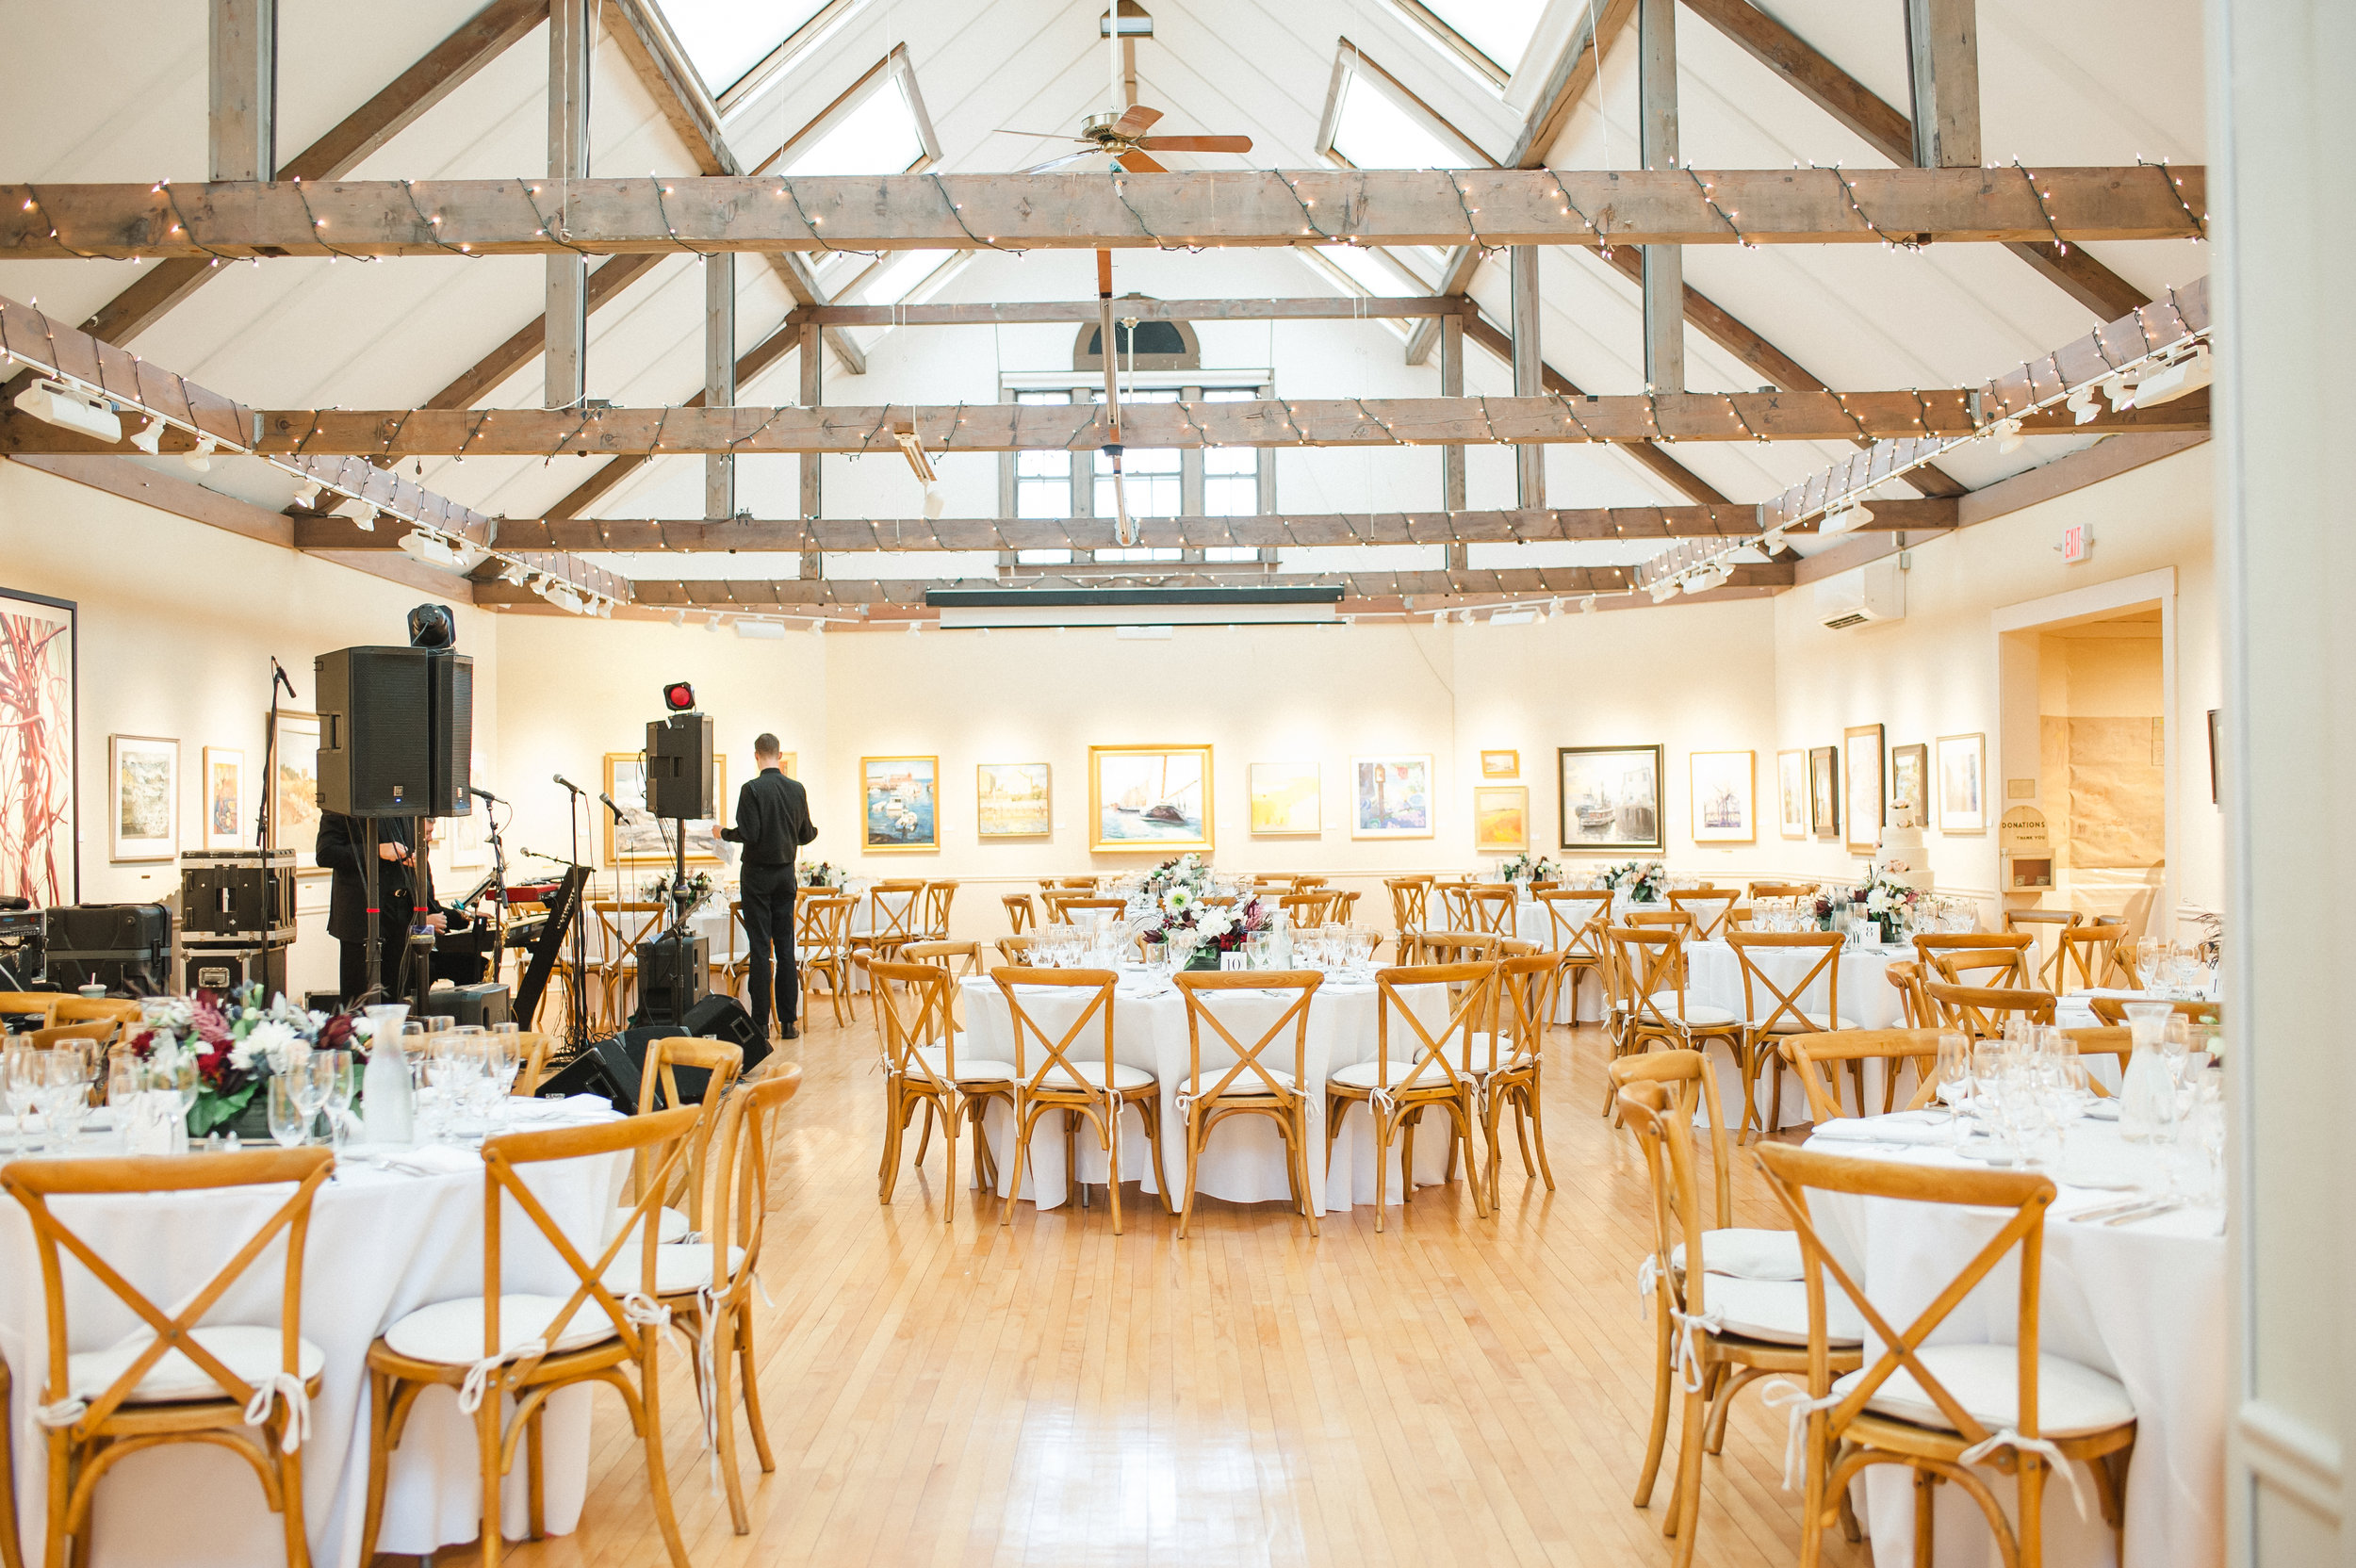 Our spacious Hibbard Gallery can seat up to 125 guests for a sit-down dinner and can accommodate up to 180 guests for a tapas/cocktail style event. Fine art enhances an elegant table setting. Image courtesy of  Esther Mathieu Photography